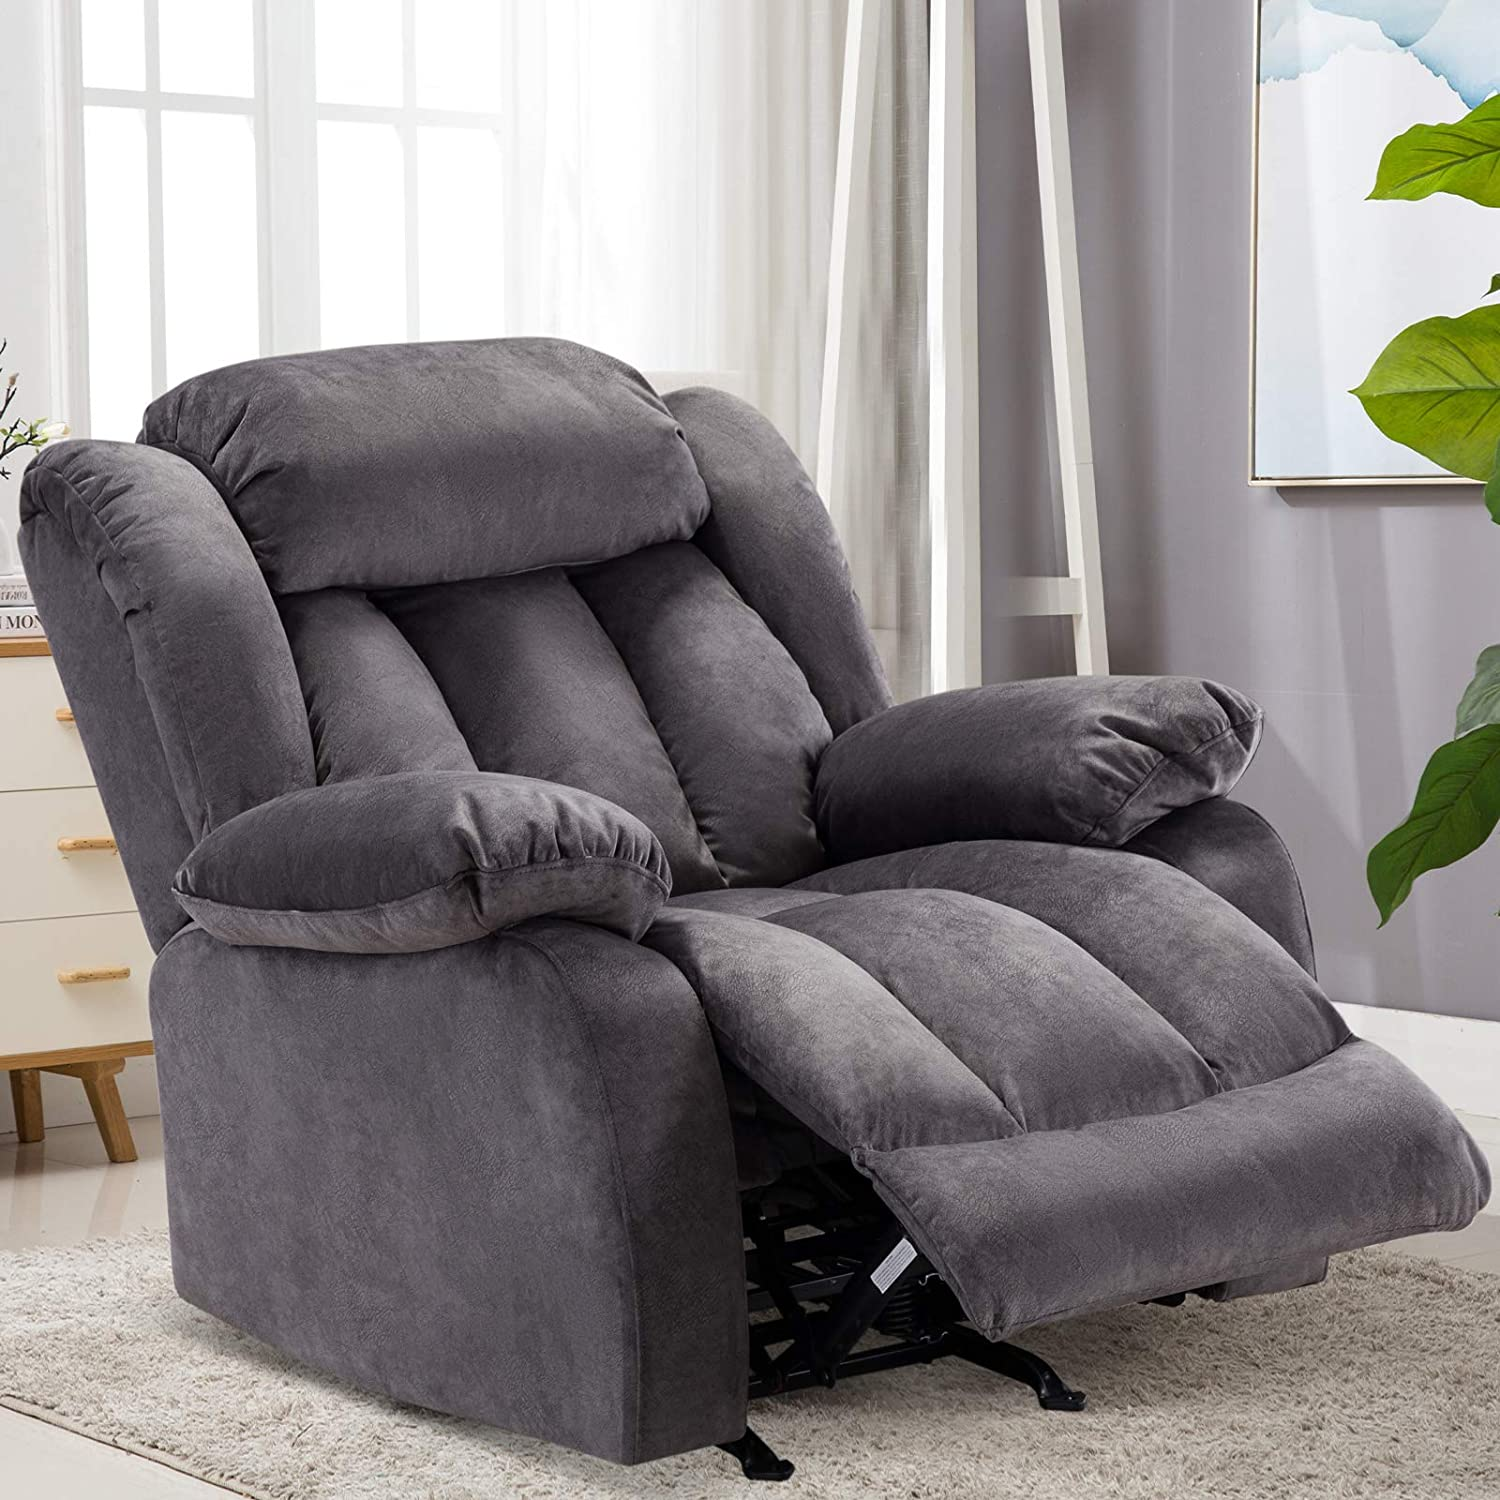 Bonzy Home Rocker Recliner Chair for Living Room, Soft Fabric Reclining Chair Oversized (Grey)